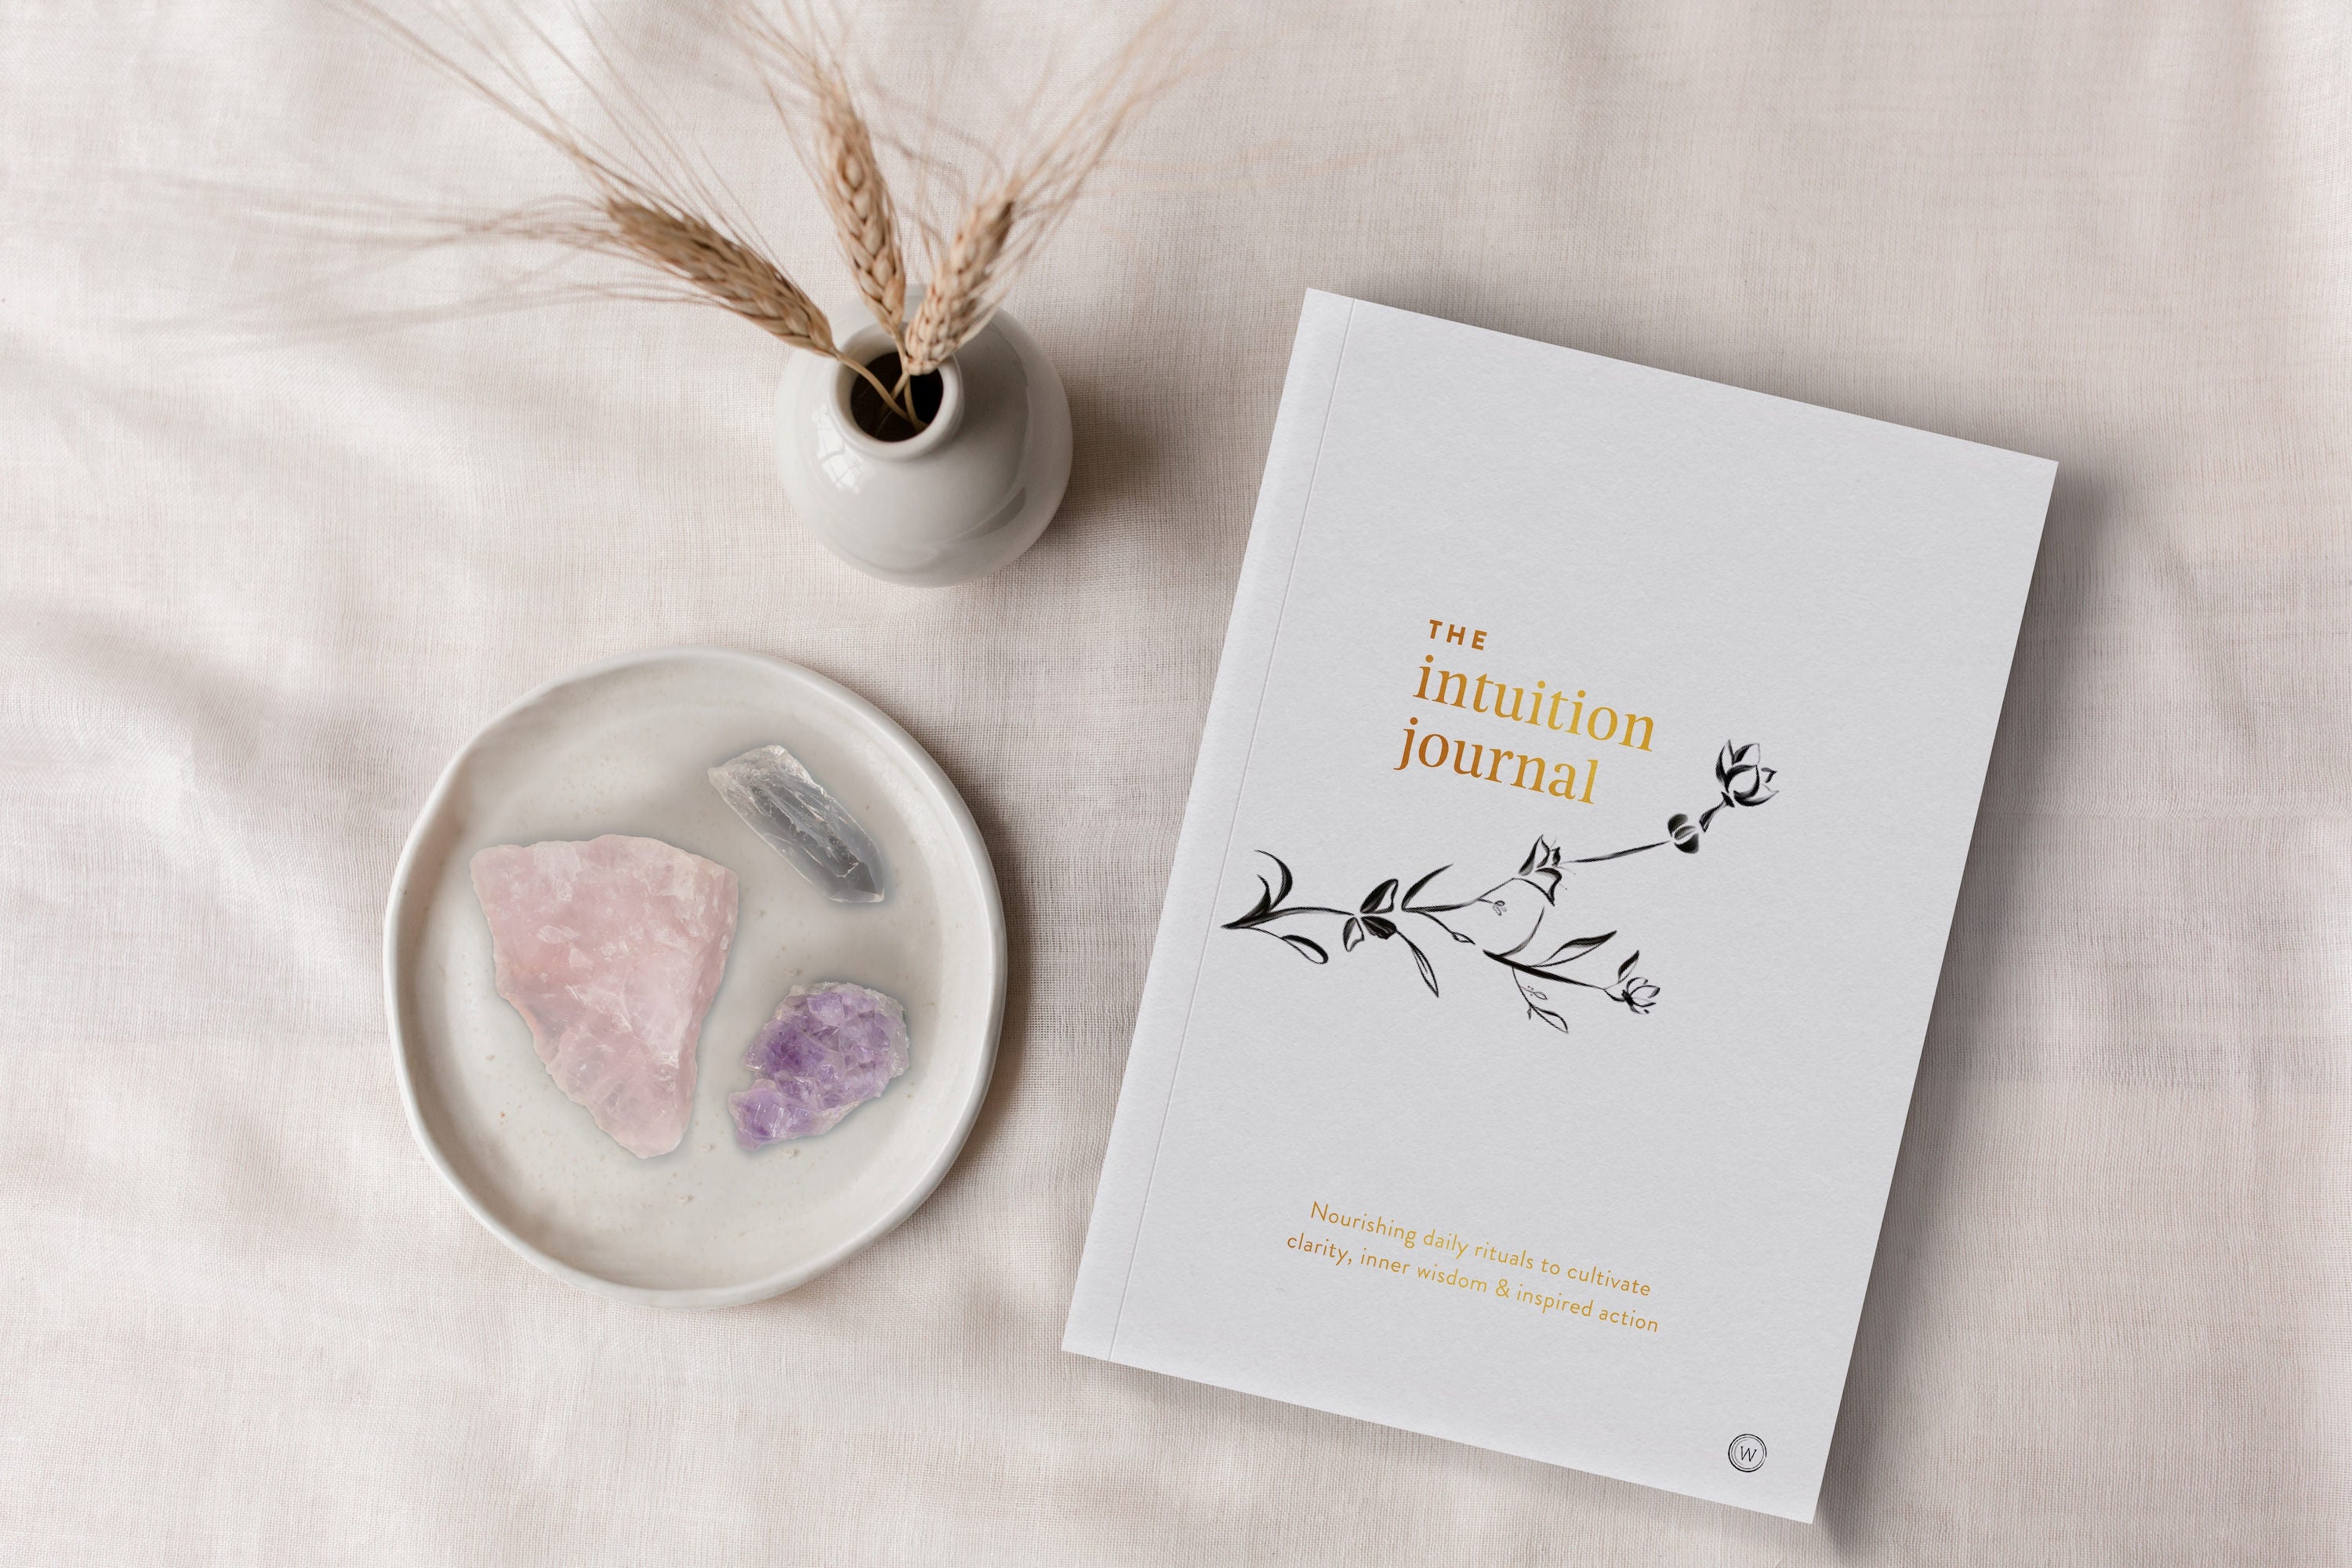 The Intuition Journal by Jo ChunYan